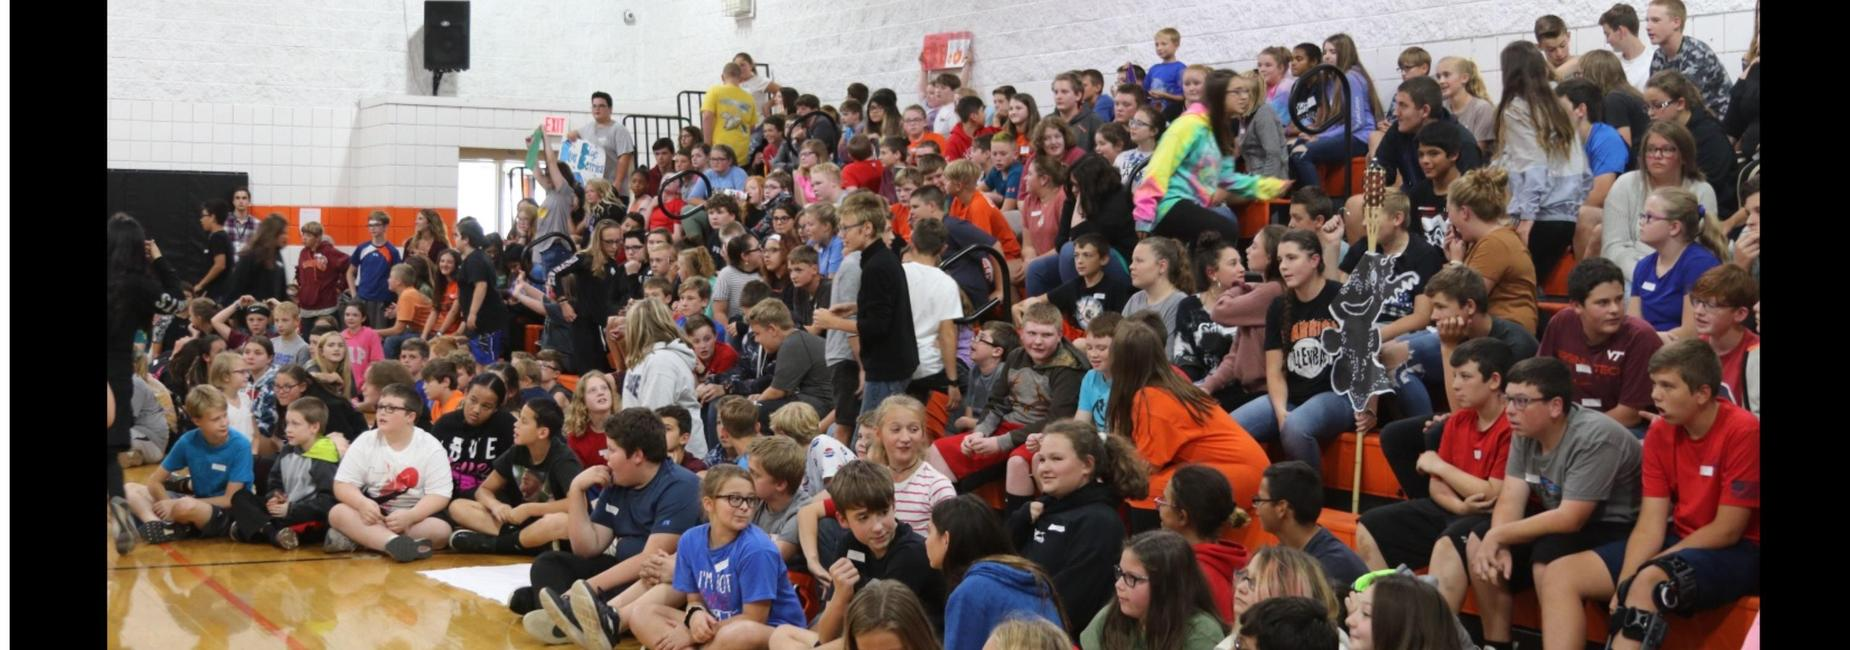 CMS students at an assembly